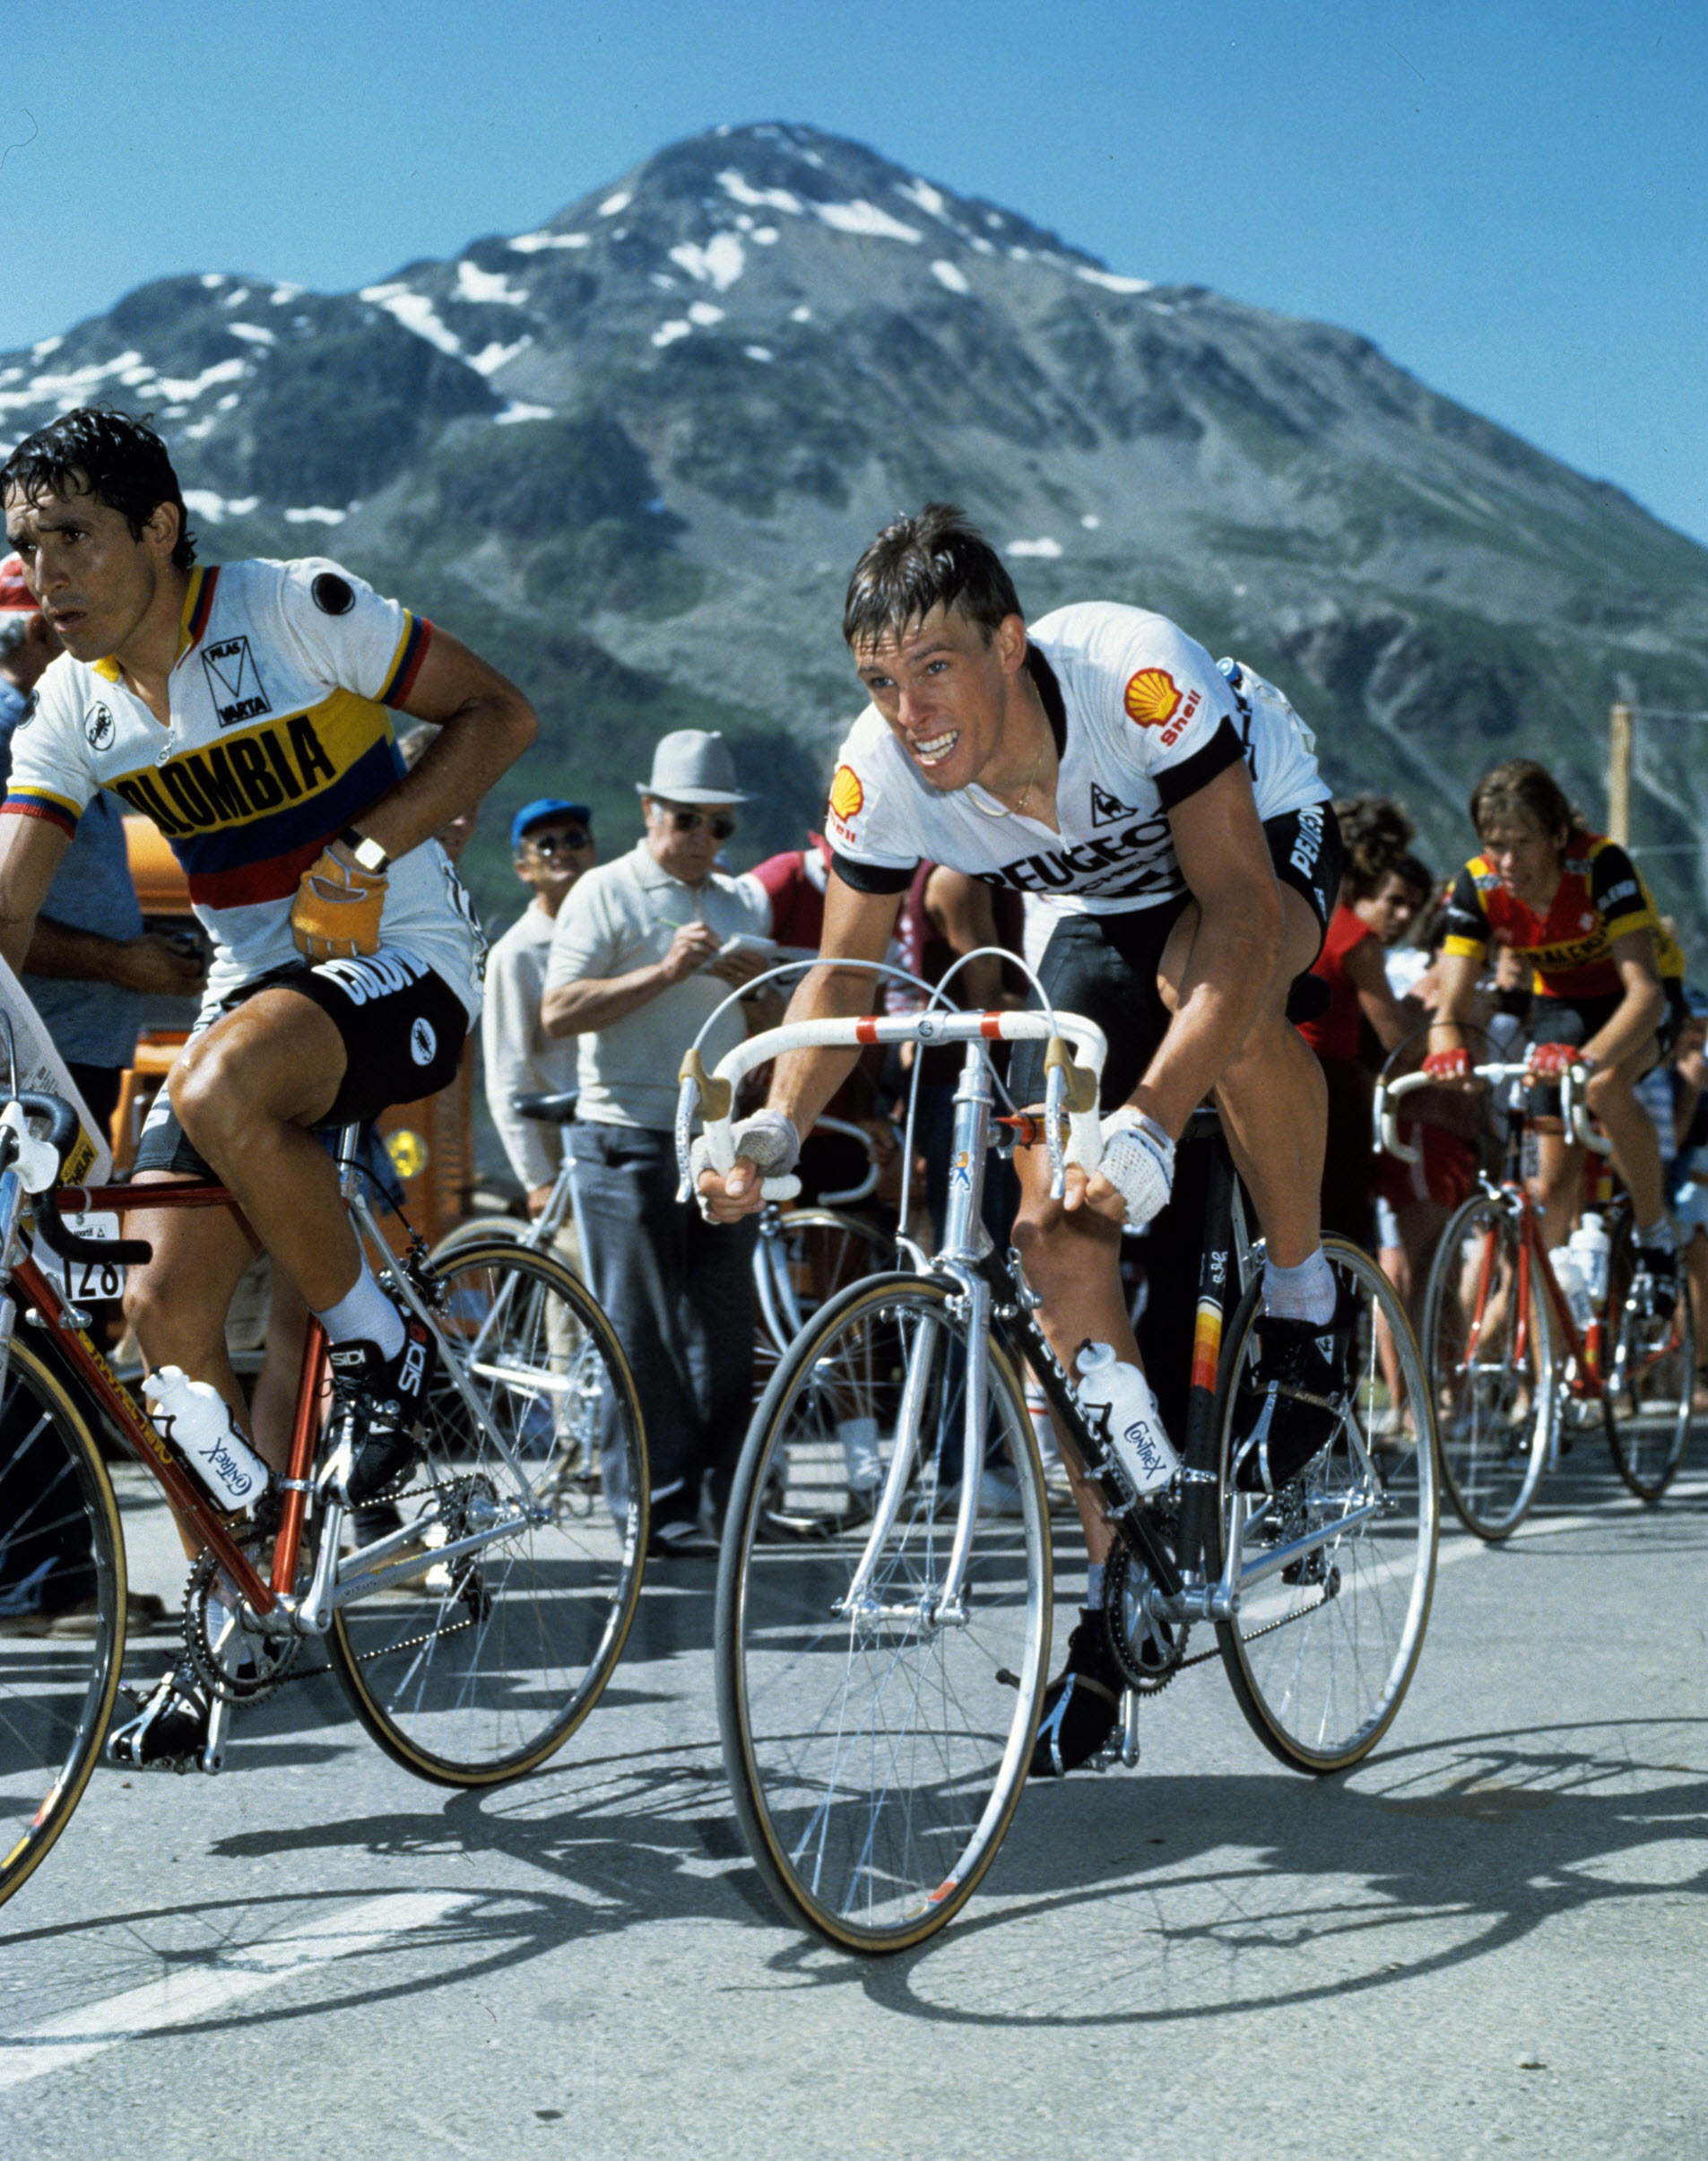 A throwback to the International Cycling Champion